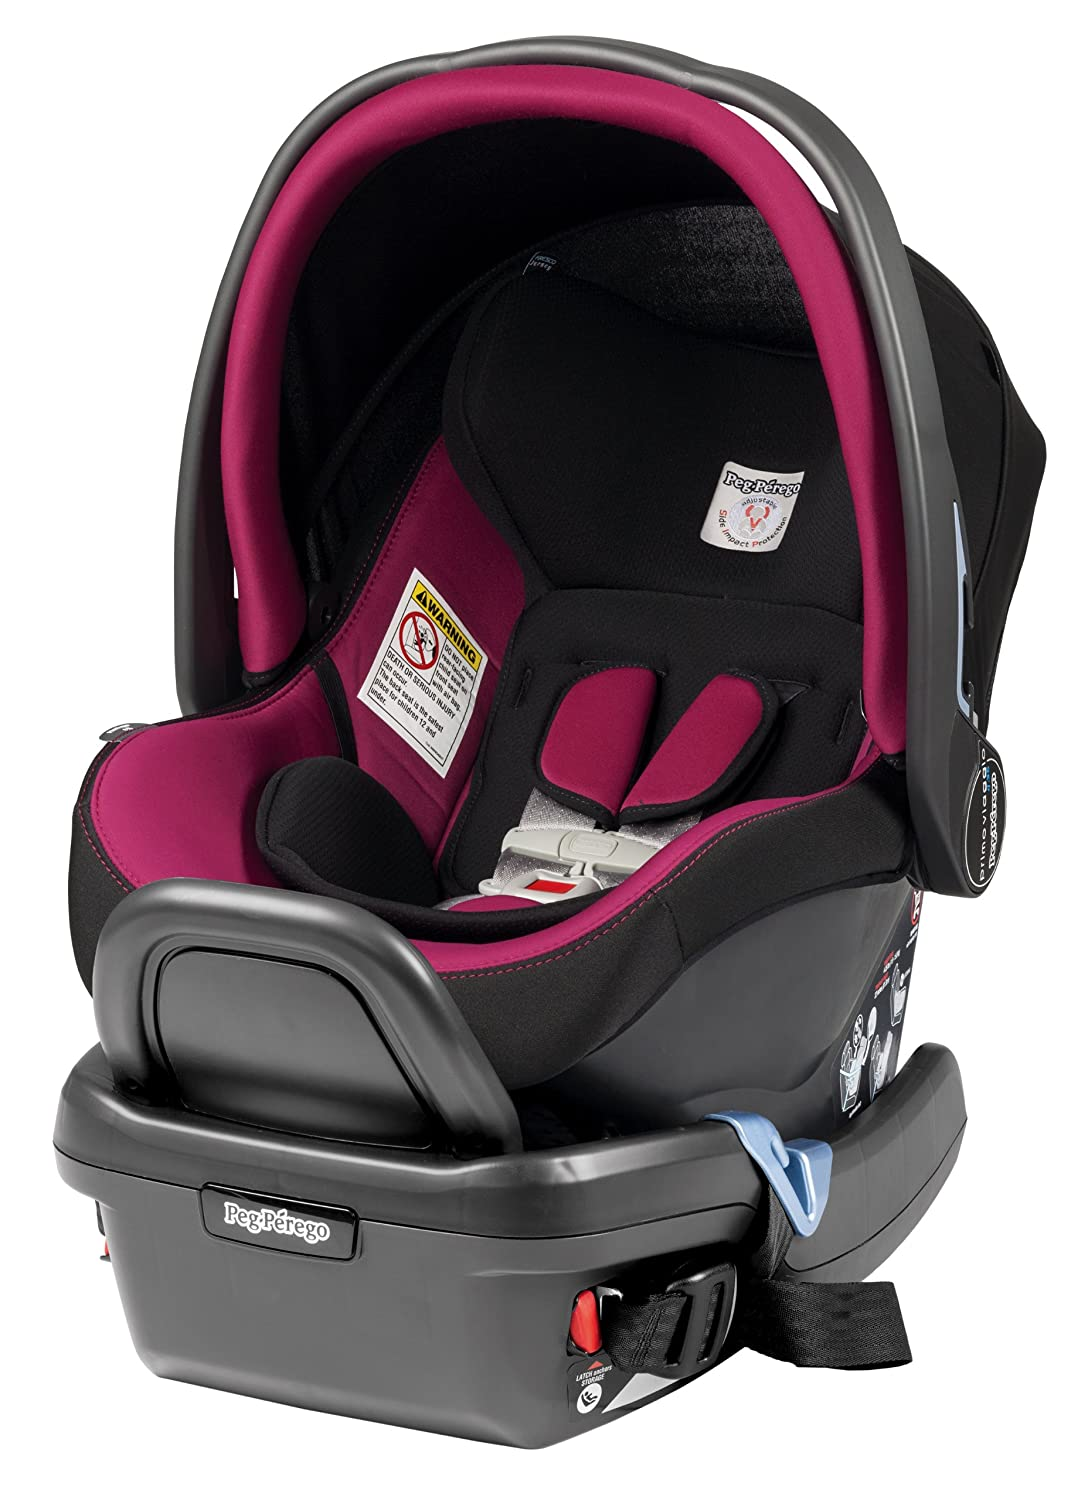 Peg Perego Primo Viaggio 4/35 Infant Car Seat with base, Atmosphere IMPV03US35DX53